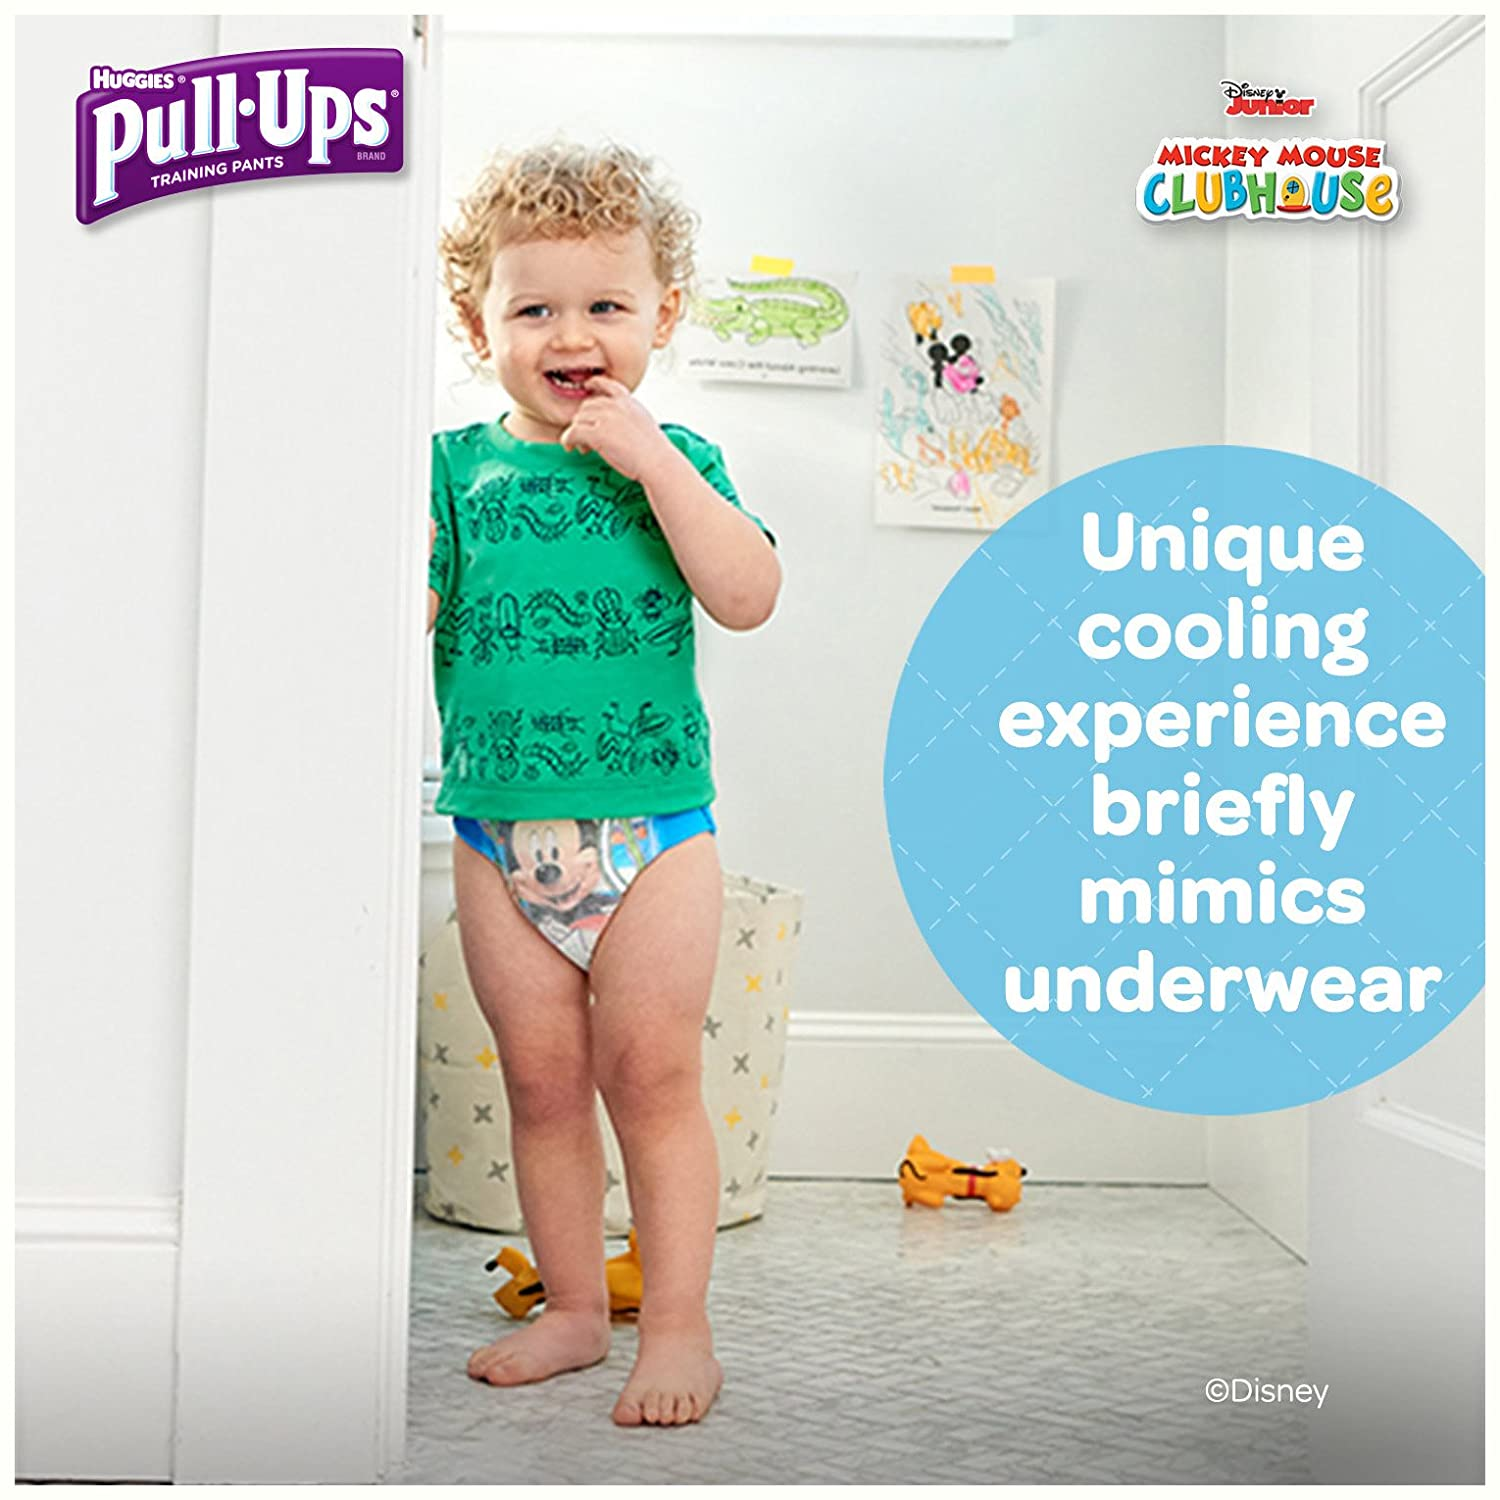 Amazon.com: Pull-Ups Cool & Learn Training Pants for Boys, 3T-4T (32-40  lbs.), 66 Count, Toddler Potty Training Underwear, Packaging May Vary:  Health ...